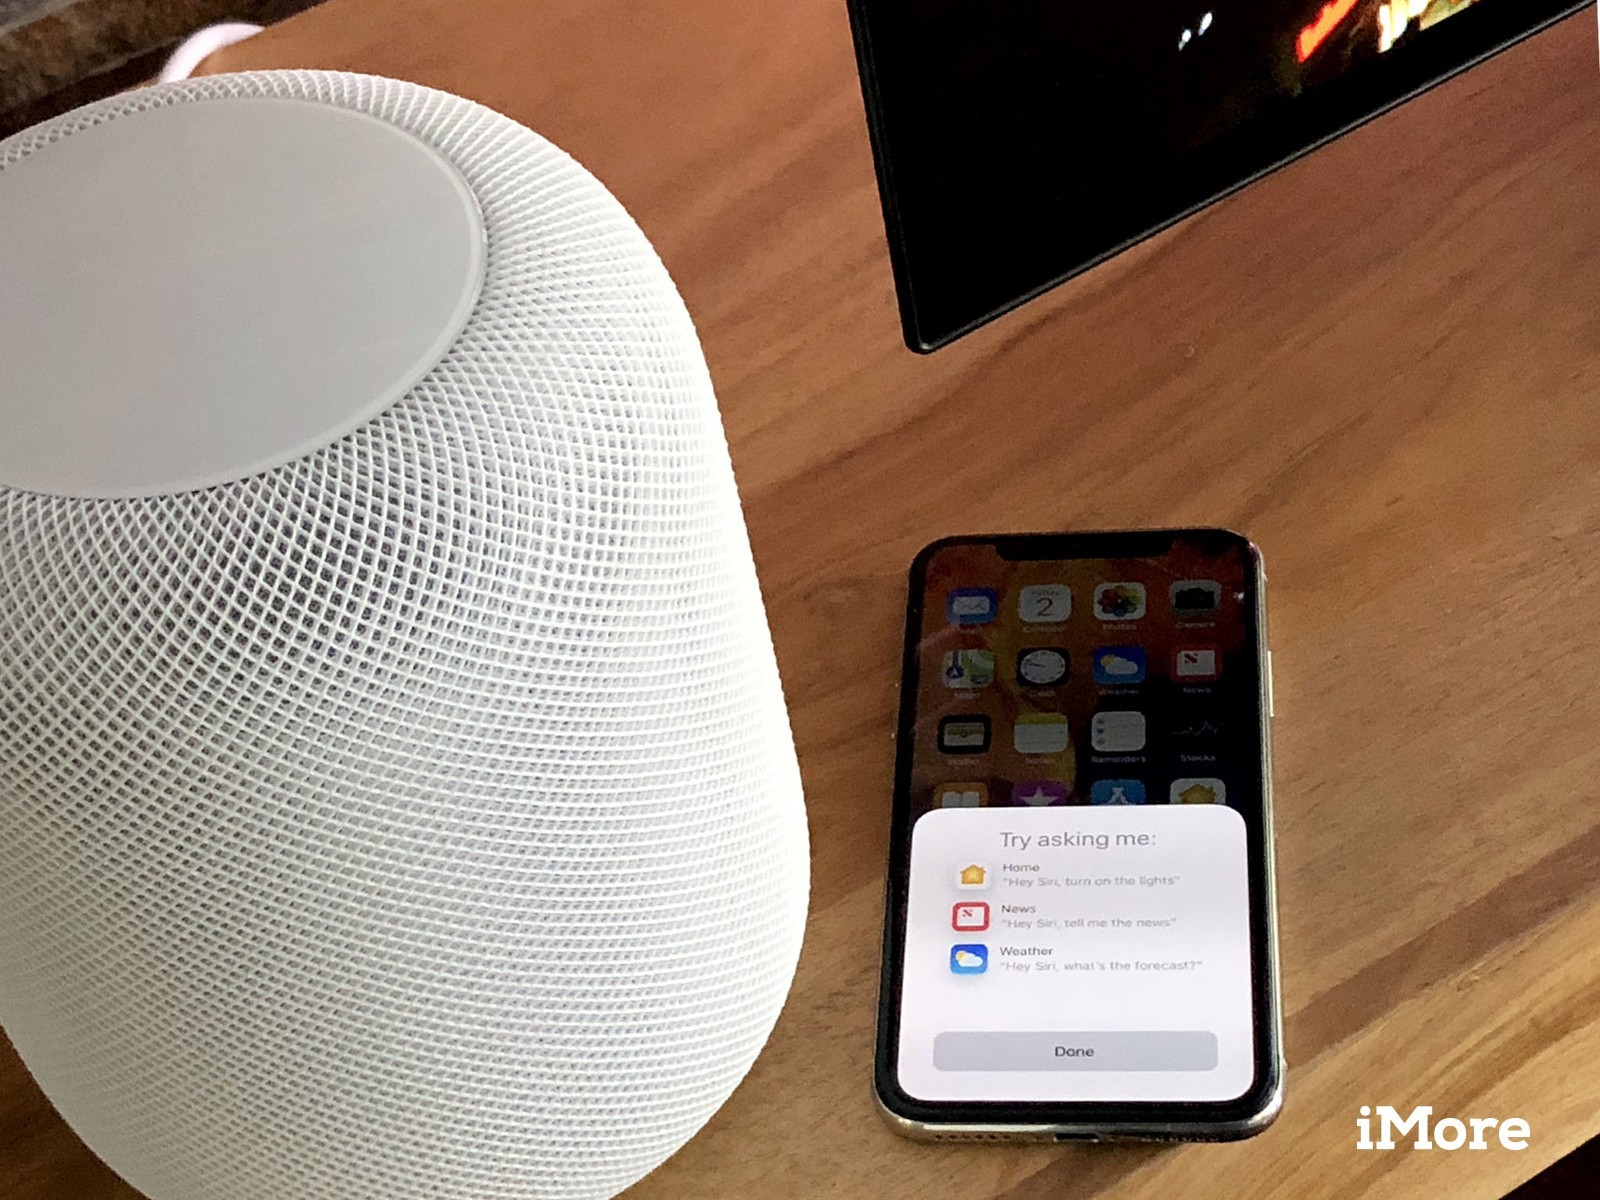 Wallpaper Dinding Minimalis Terbaik Untuk Homepod Review Retina for Your Ears Of Wallpaper Dinding Minimalis Paling Indah Untuk 45 Stunning Removable Wallpapers Temporary Wallpaper Designs